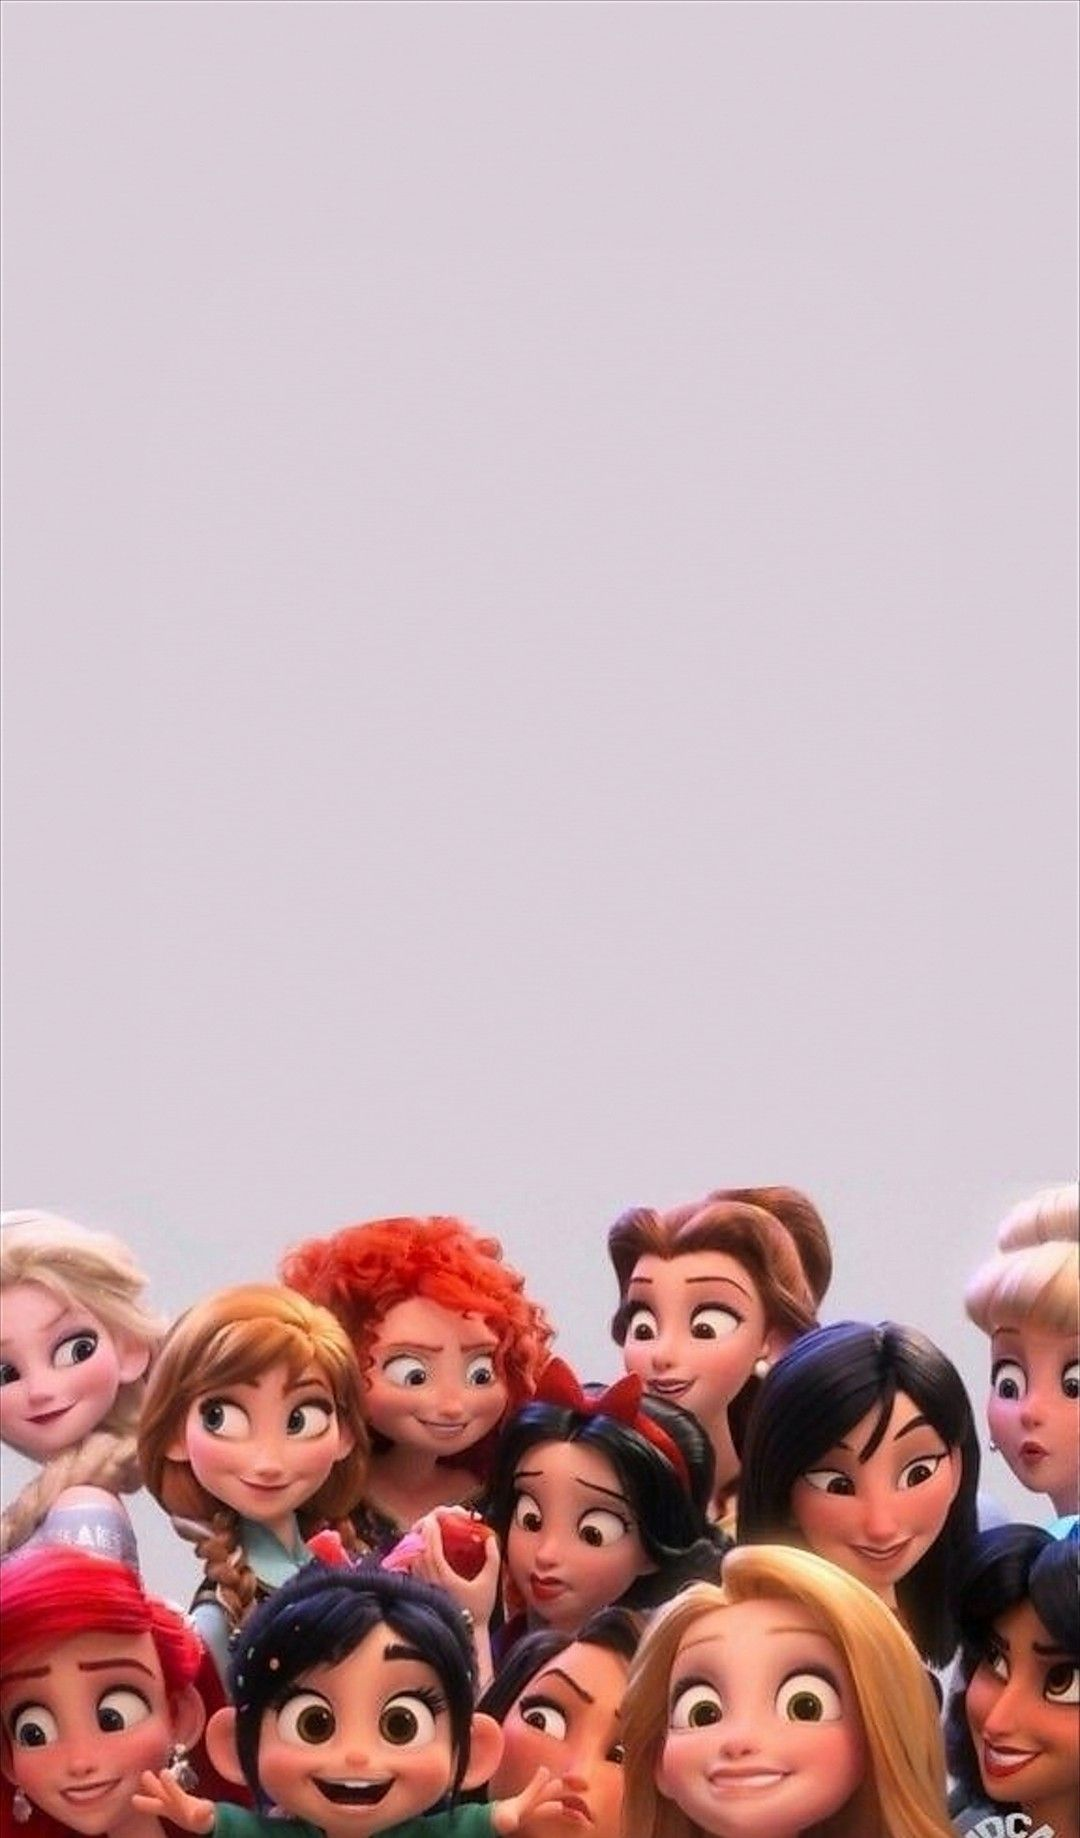 Pin By Chardaemen On Dinsey With Images Disney Phone Wallpaper Disney Princess Wallpaper Disney Wallpaper